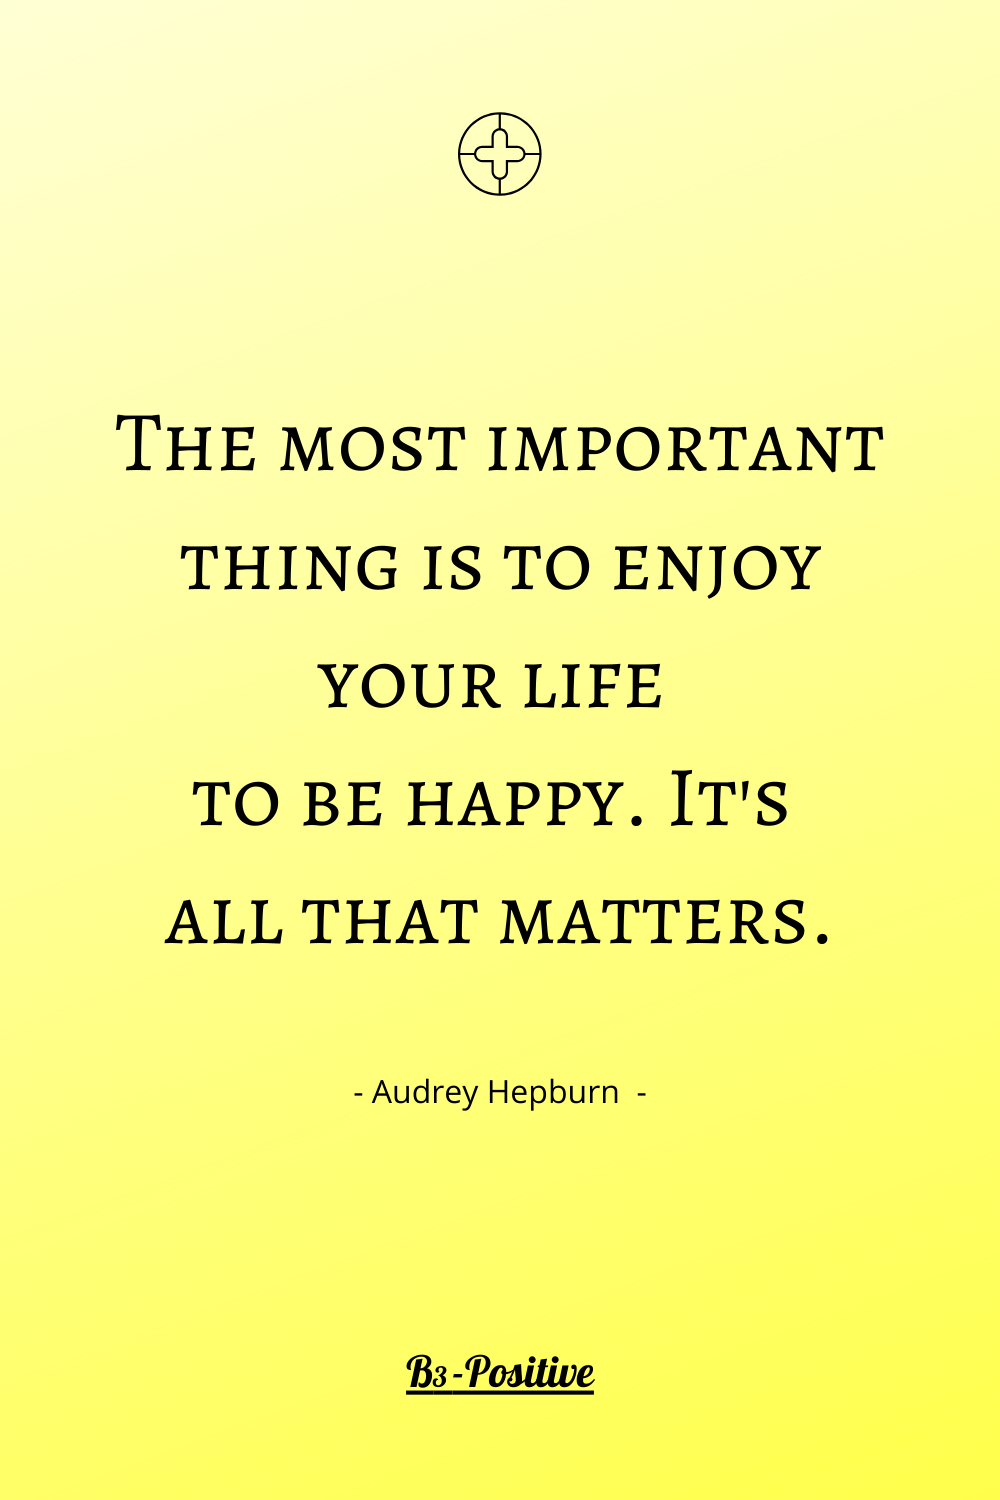 Best Happy Quotes Daily Quotes To Keep You Inspired Telegram Channel Good Happy Quotes Happy Quotes Positive Quotes Wallpaper